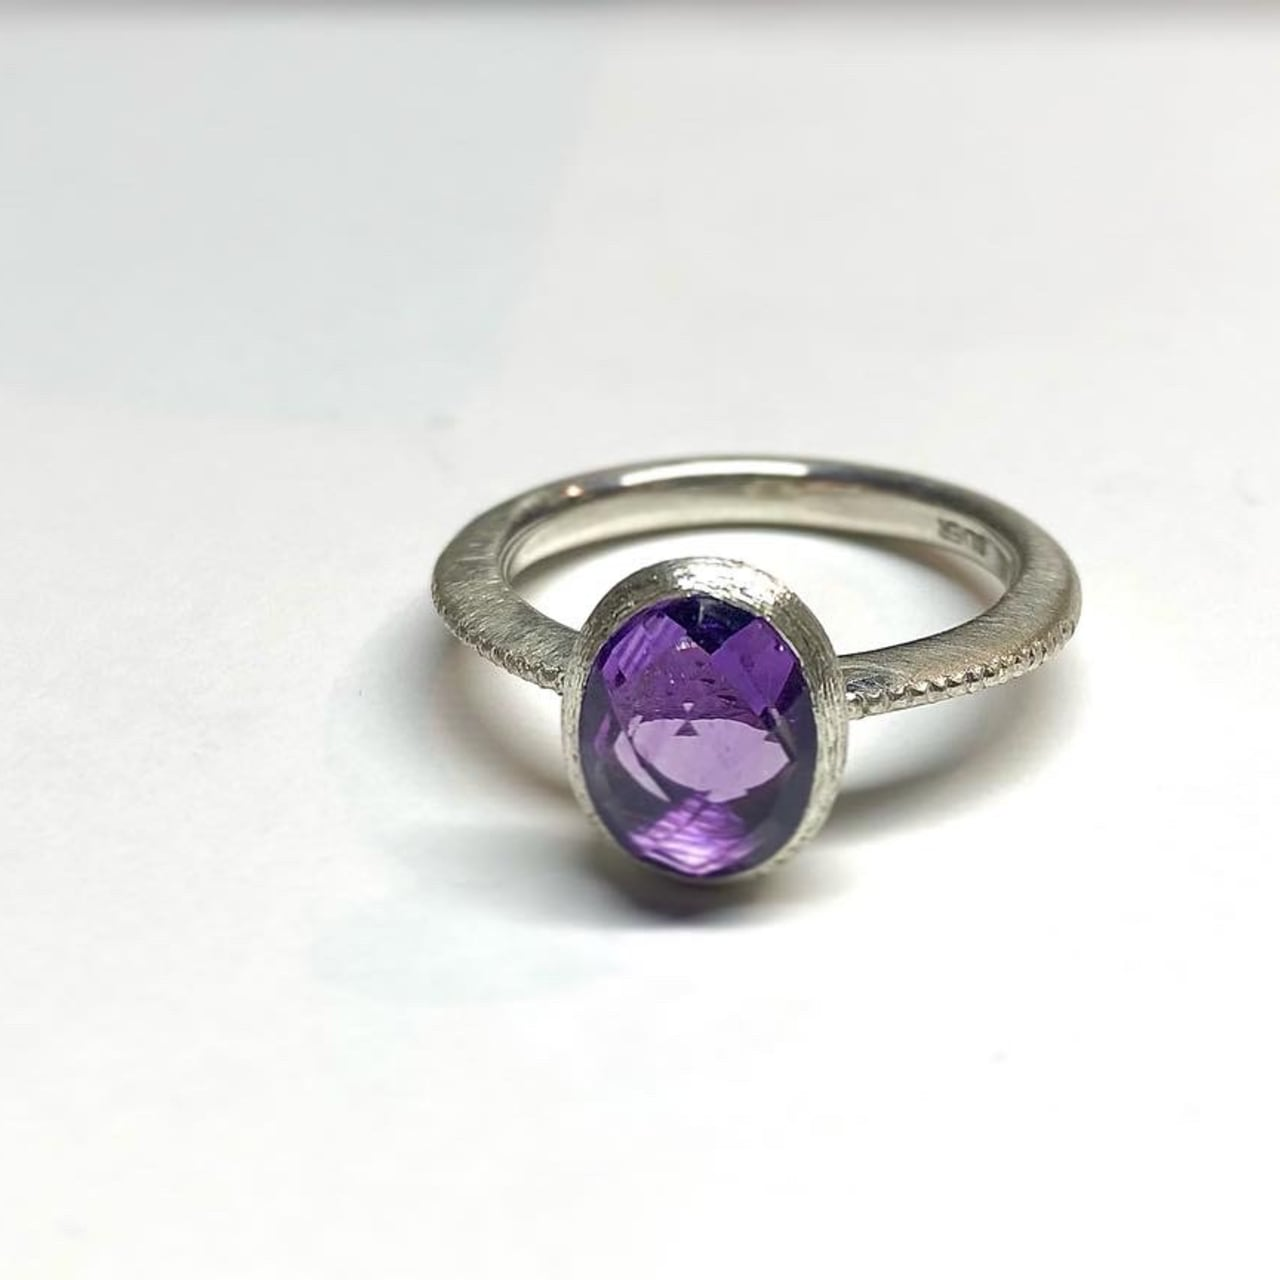 【3OMSV】『One off』 amethyst oval cut ring